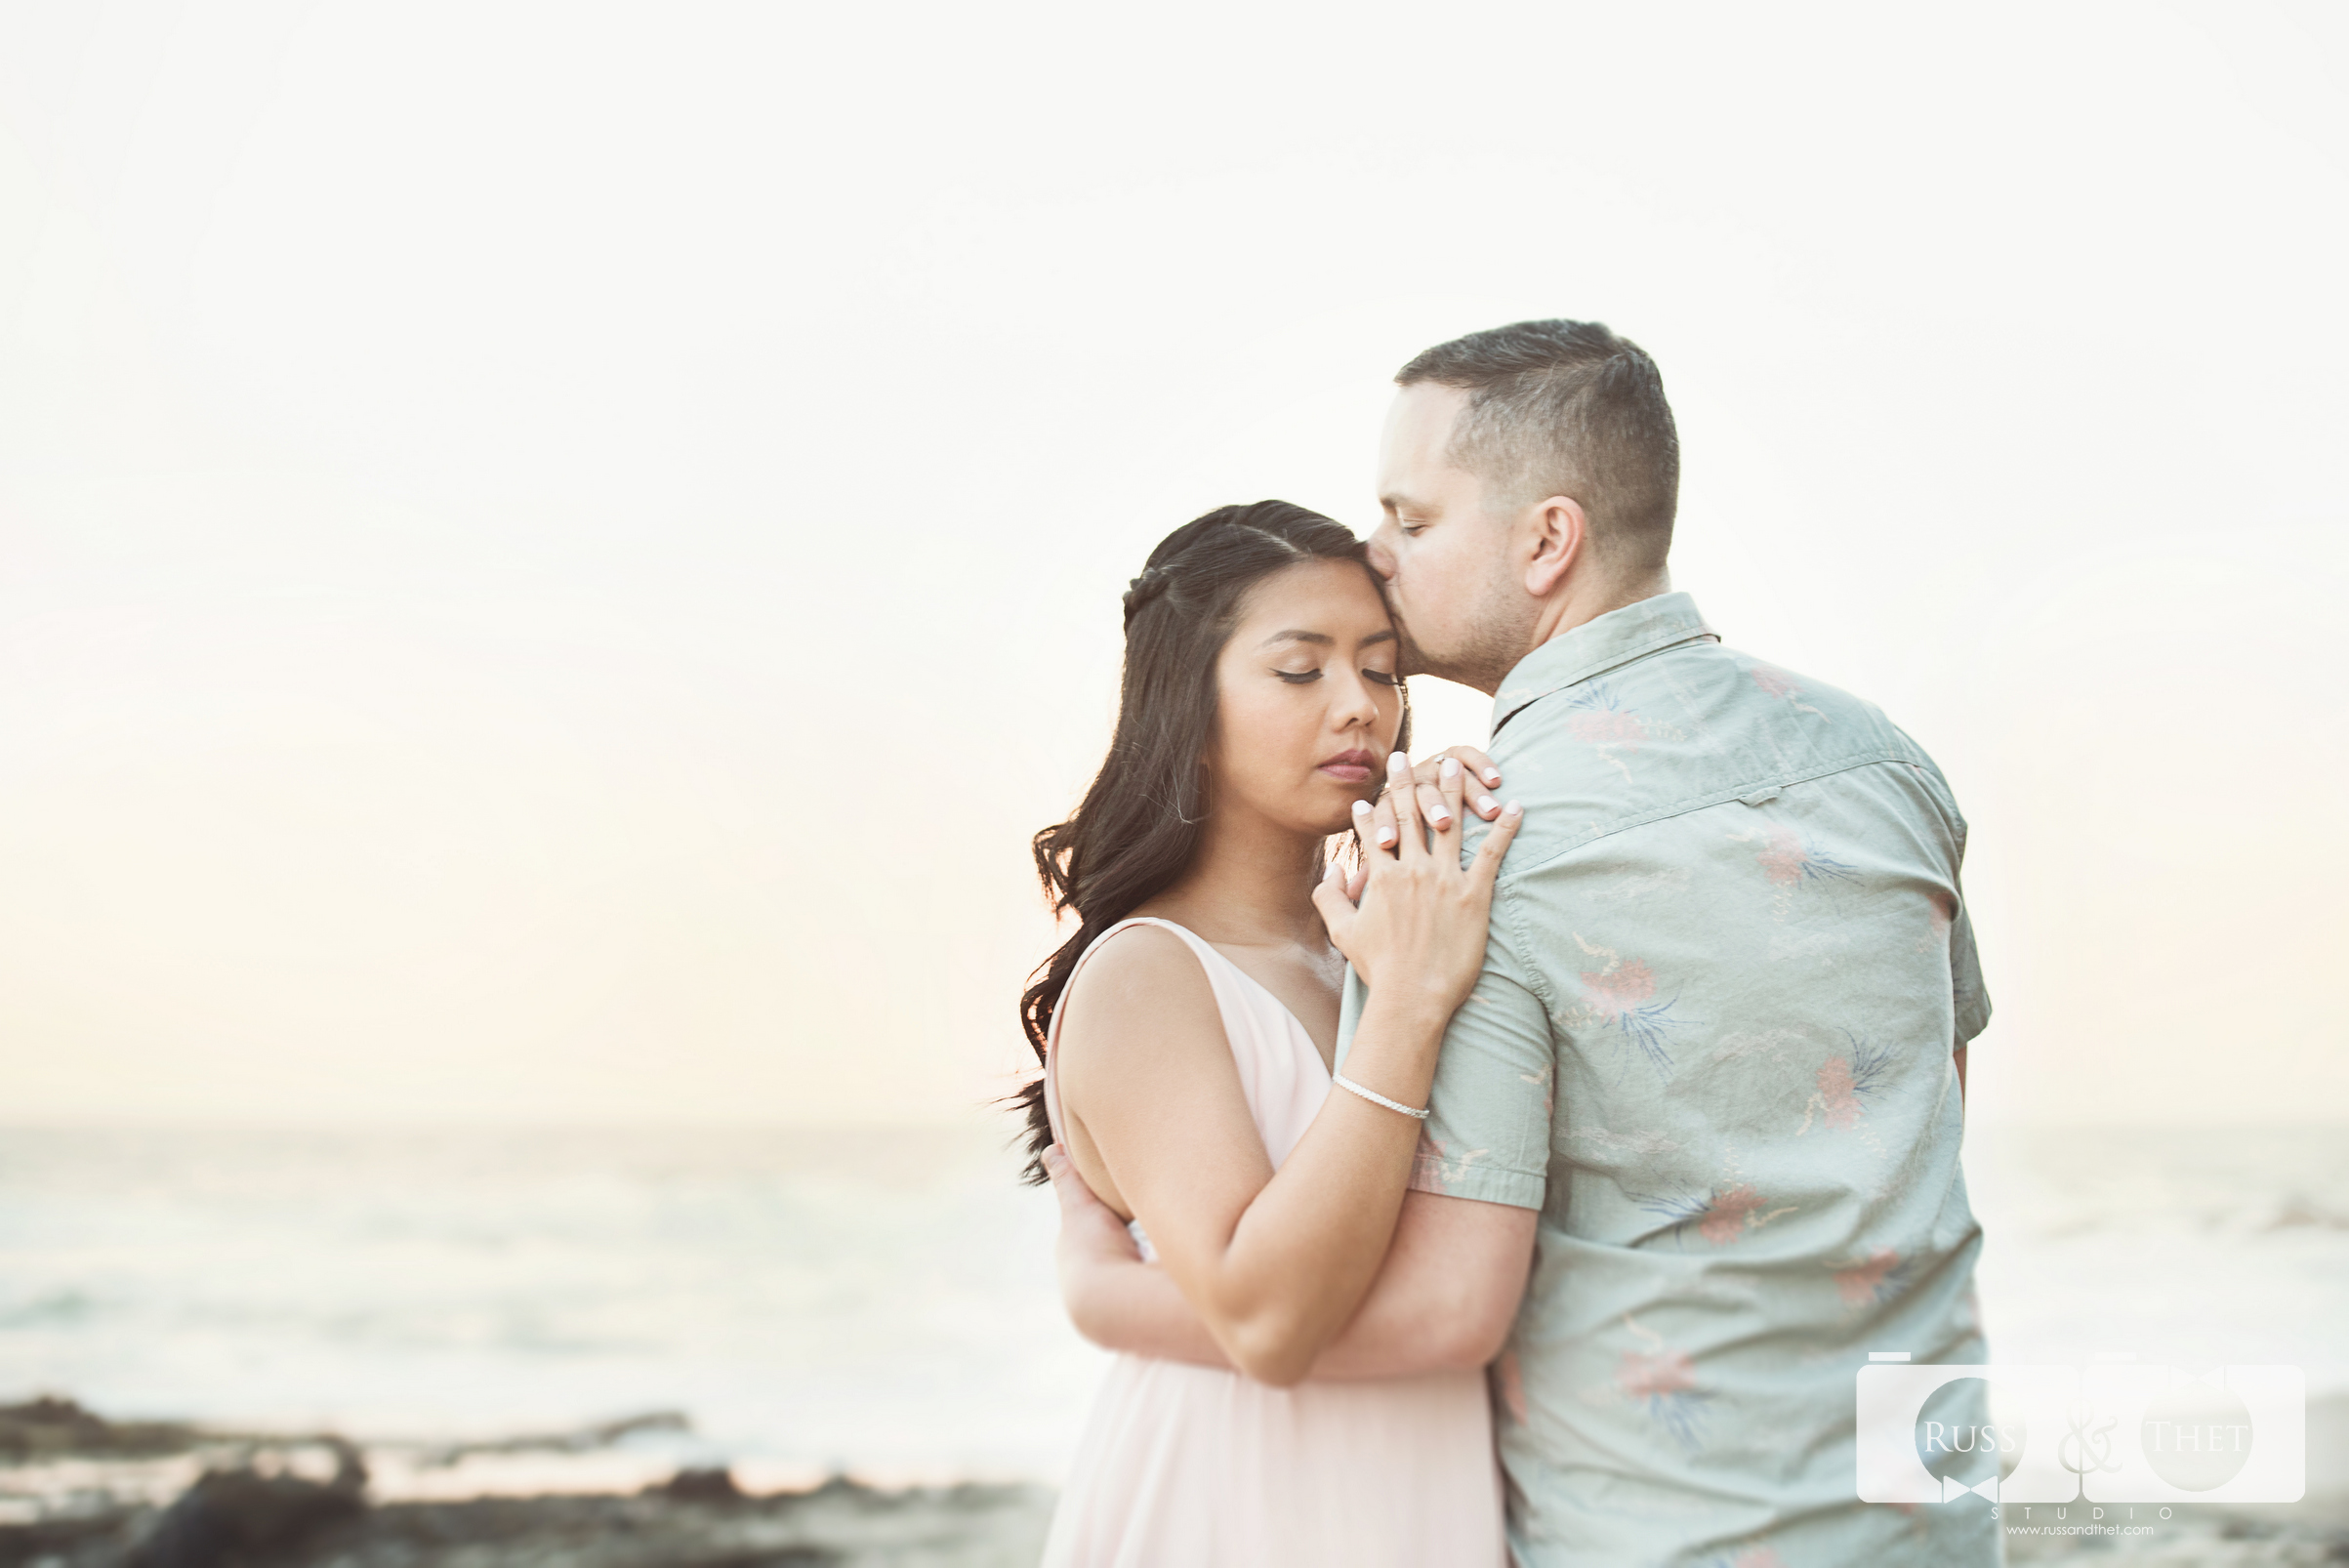 San-Juan-Capistrano-Engagement-Photographer (9).jpg